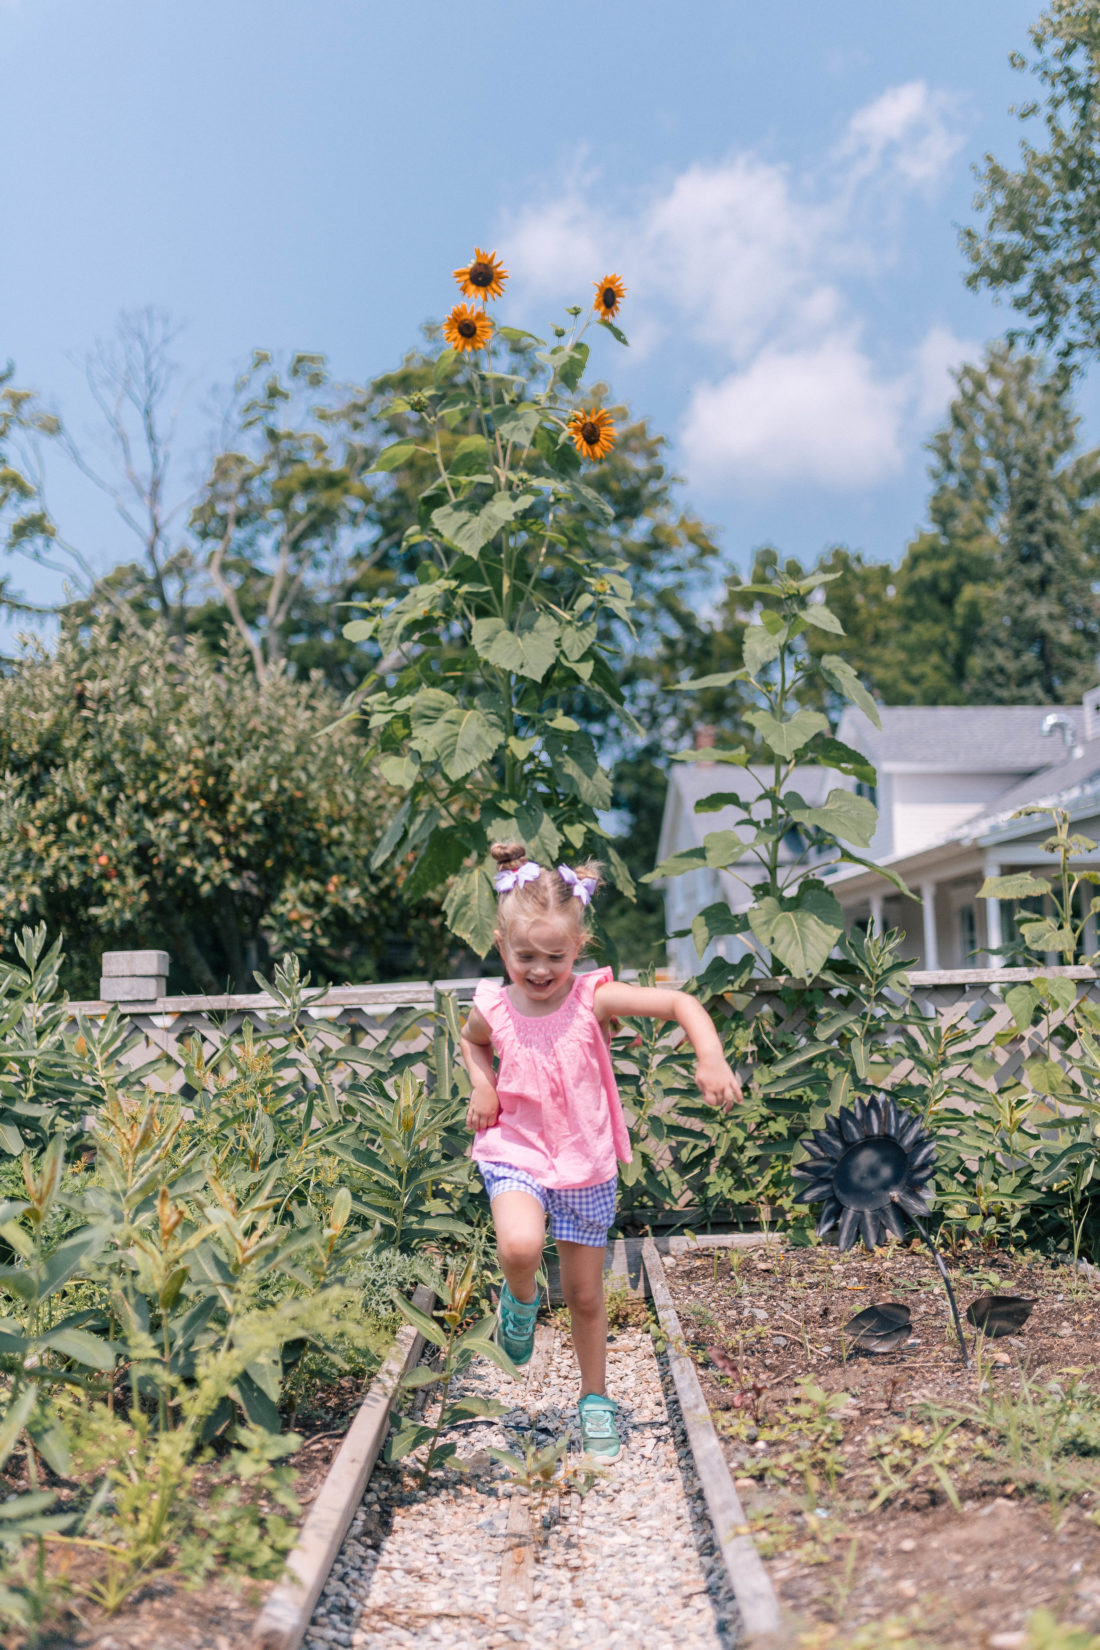 Marlowe Martino wears a pink top and gingham shorts, and picks vegetables in the garden of a local connecticut farm